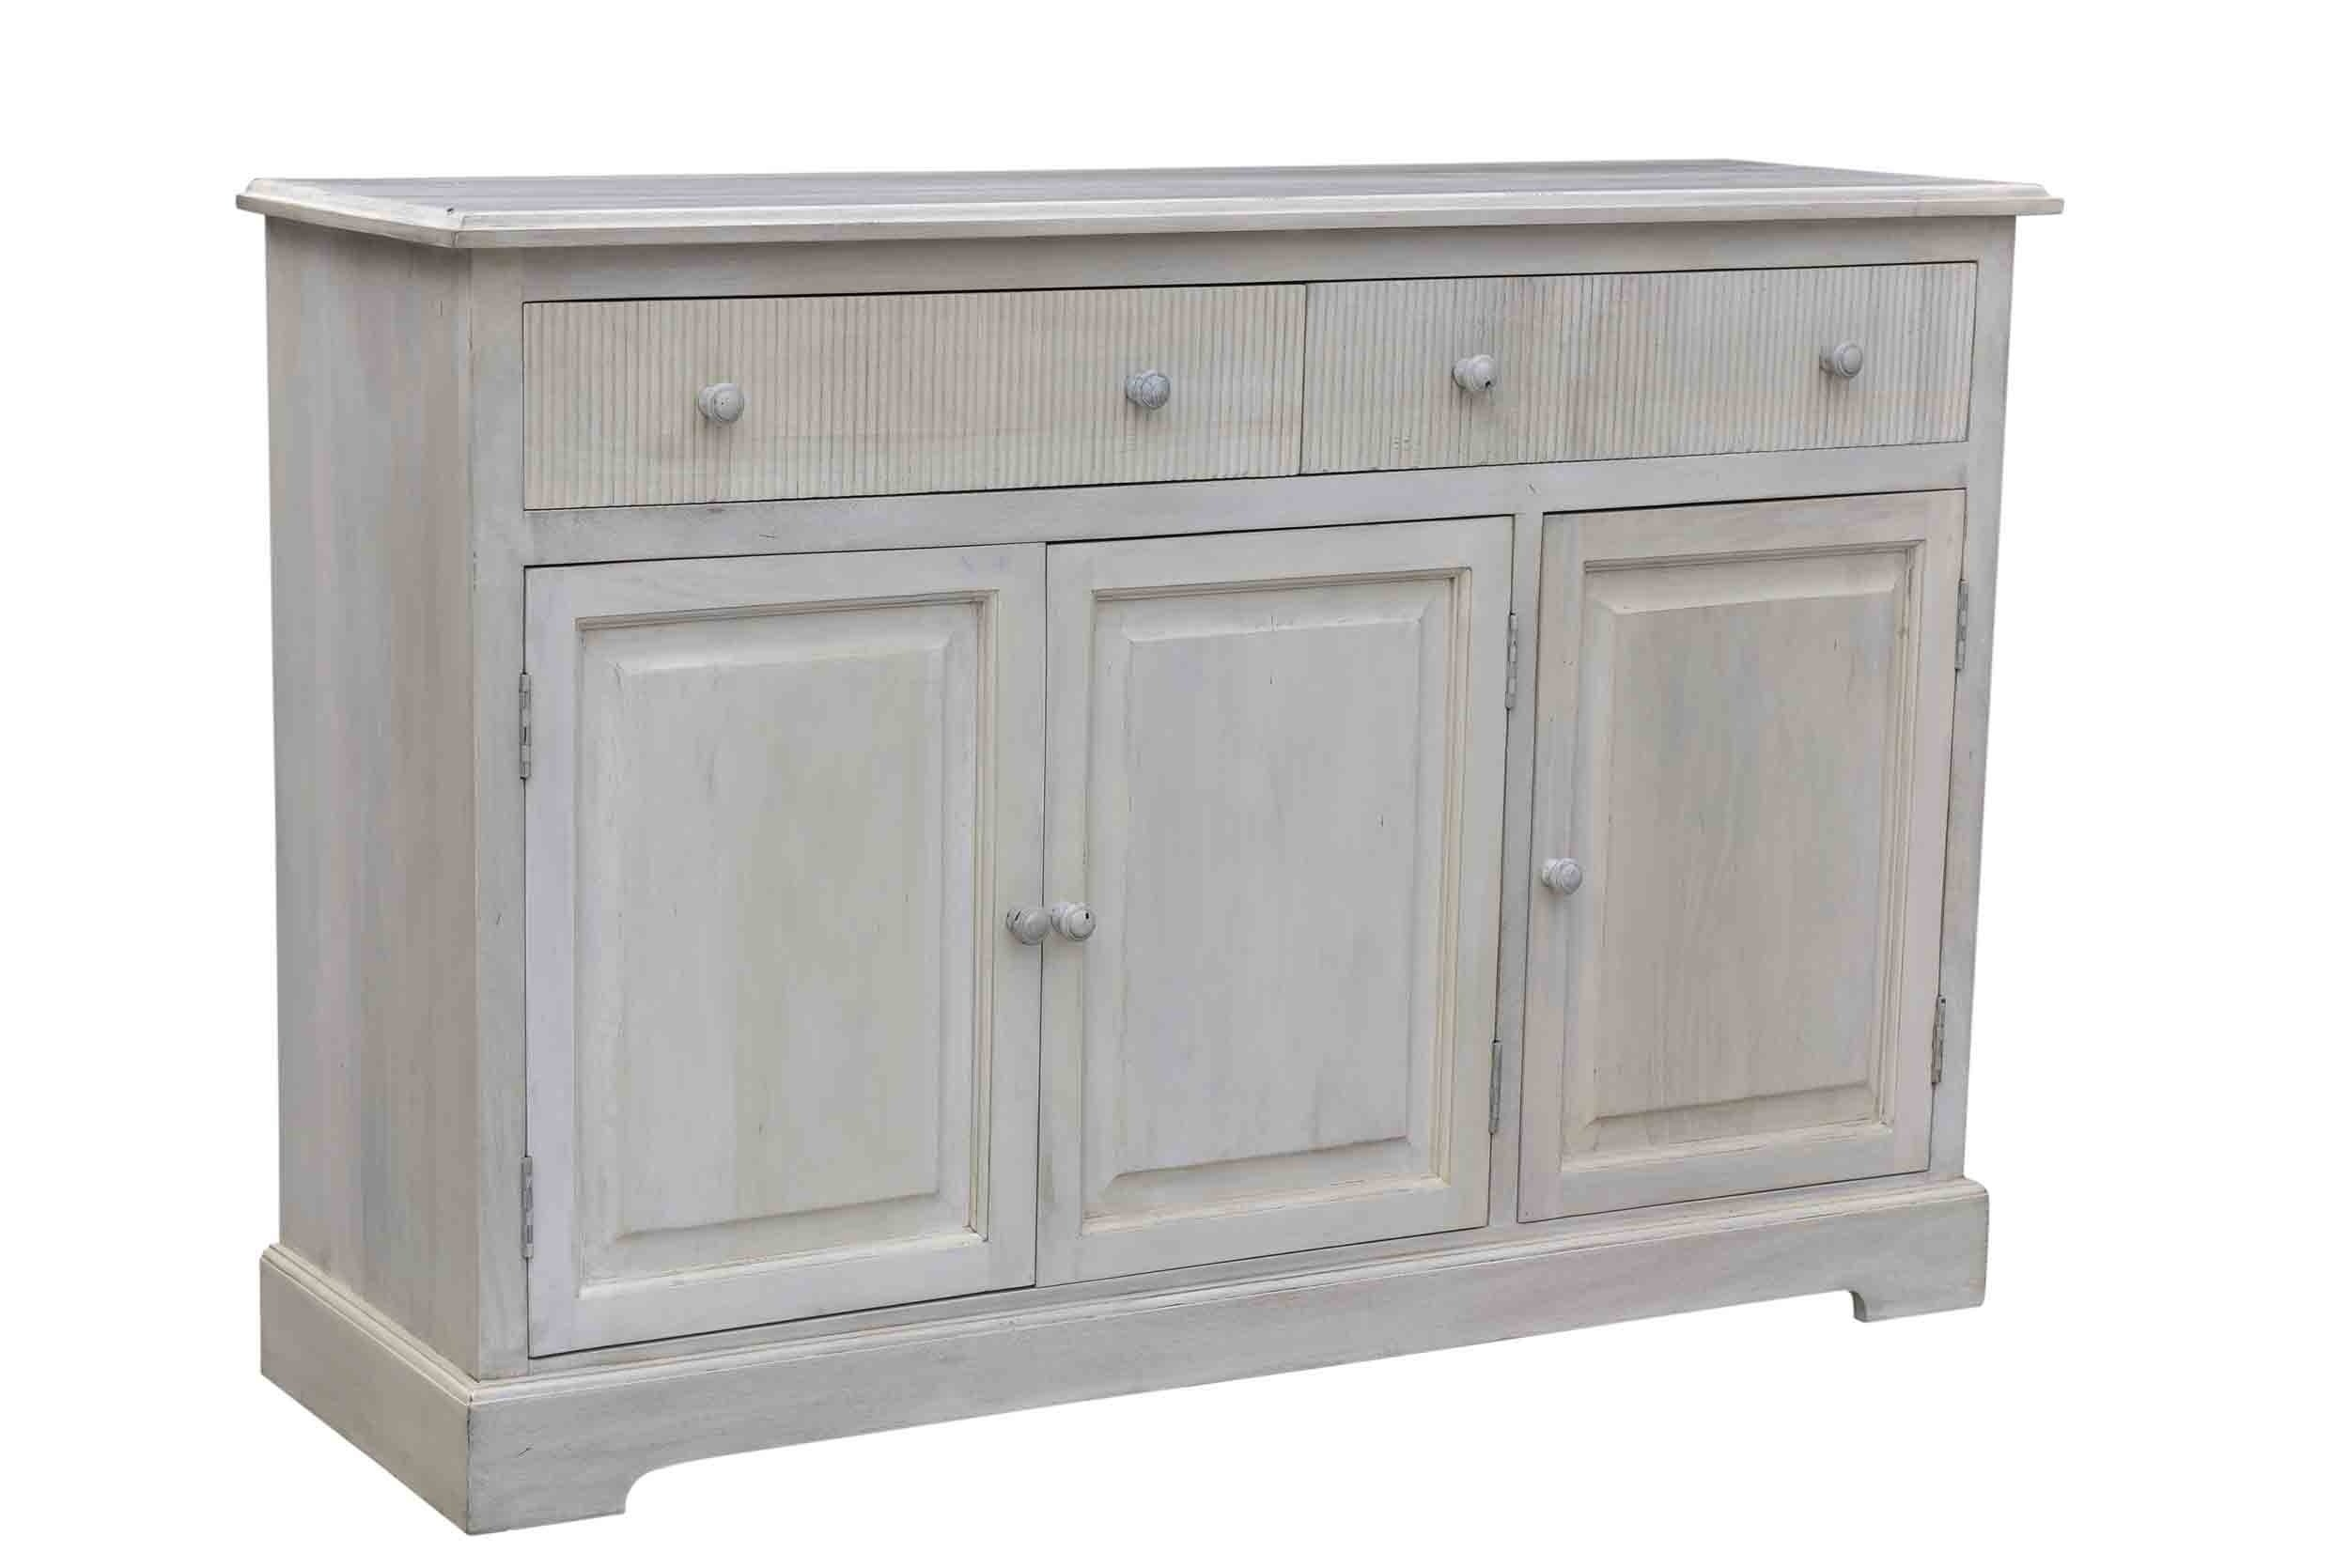 Coursey Sideboard | Joss & Main intended for Norwood Sideboards (Image 10 of 30)